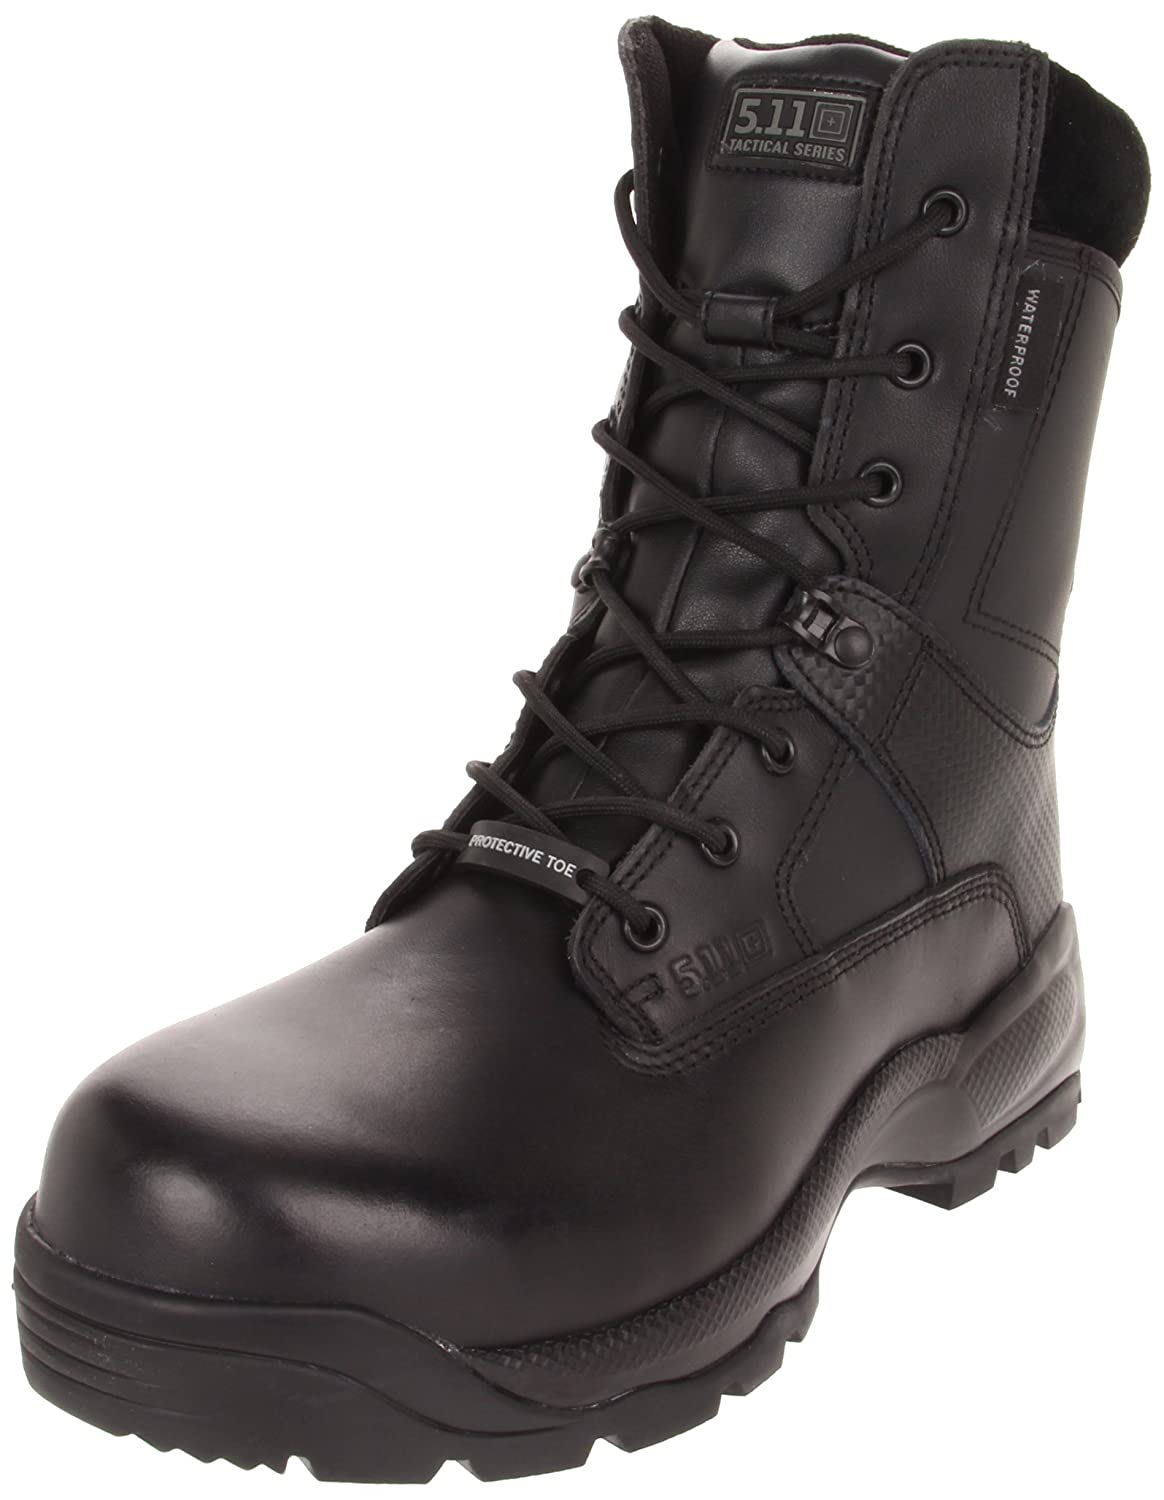 "5.11 Men's A.T.A.C. SHIELD 8"" Side Zip CSA/ASTM Tactical Boot with Safety Toe"